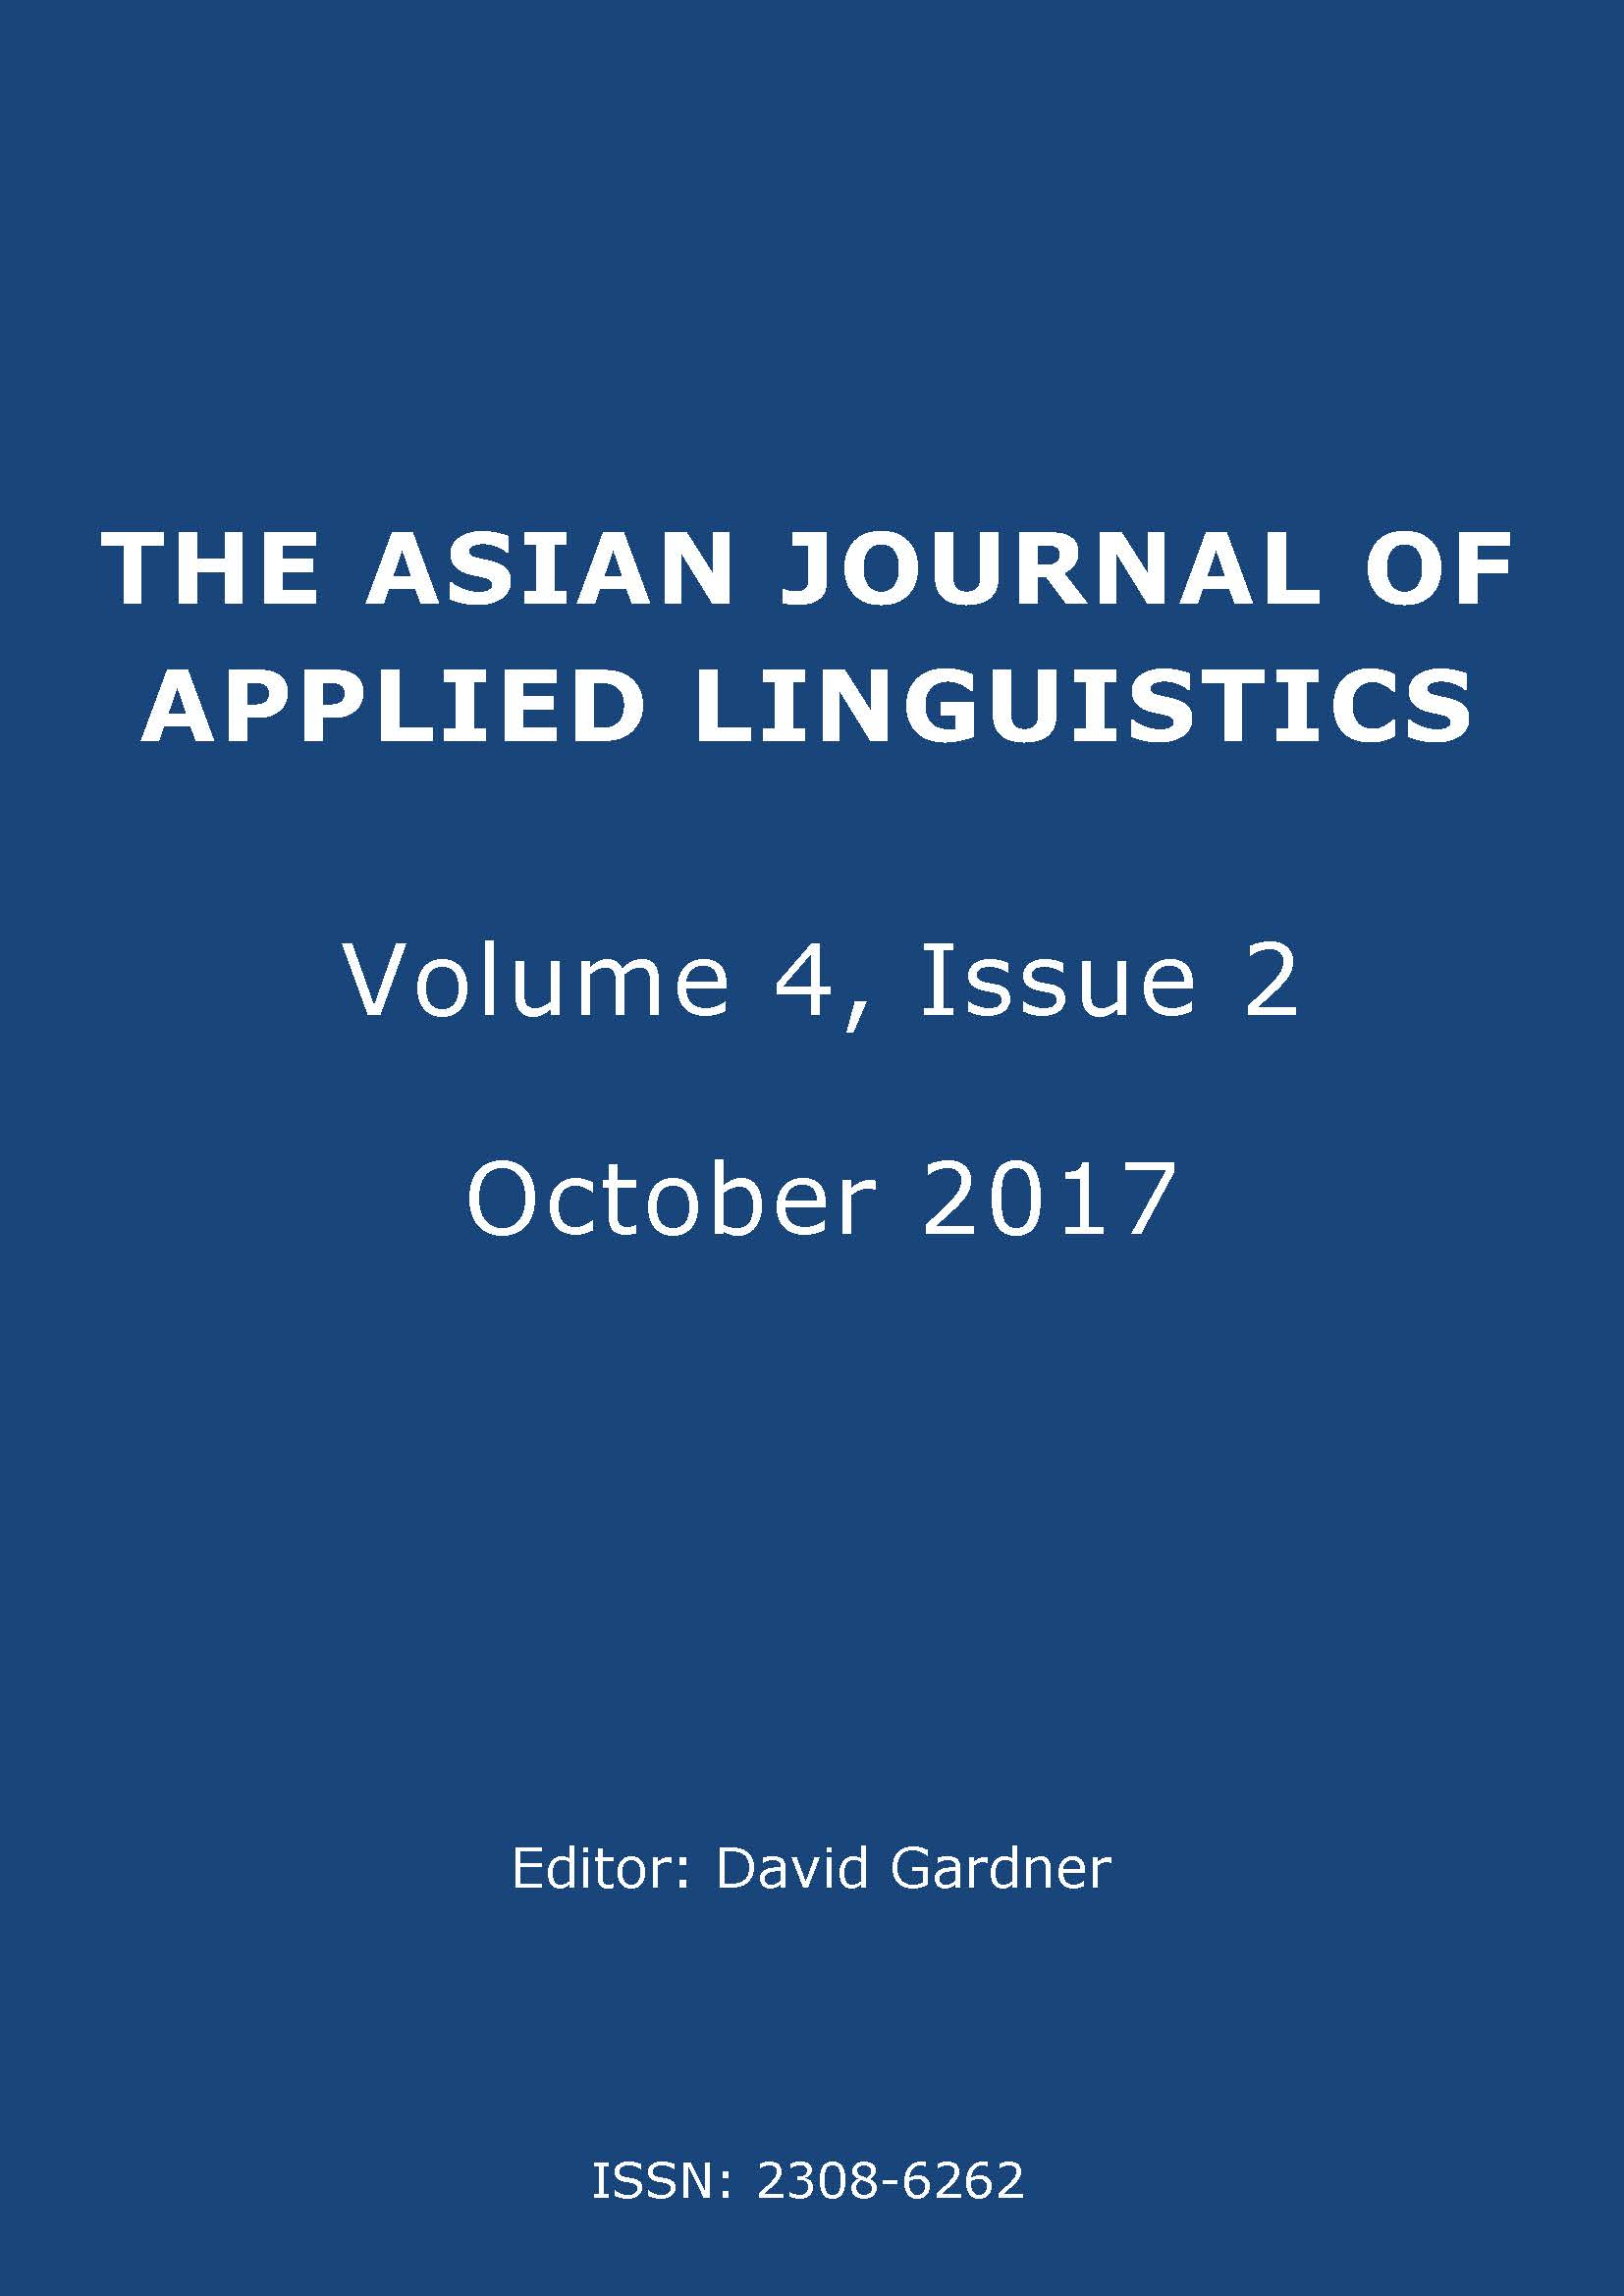 The Asian Journal of Applied Linguistics. Volume 4. Issue 2. October 2017